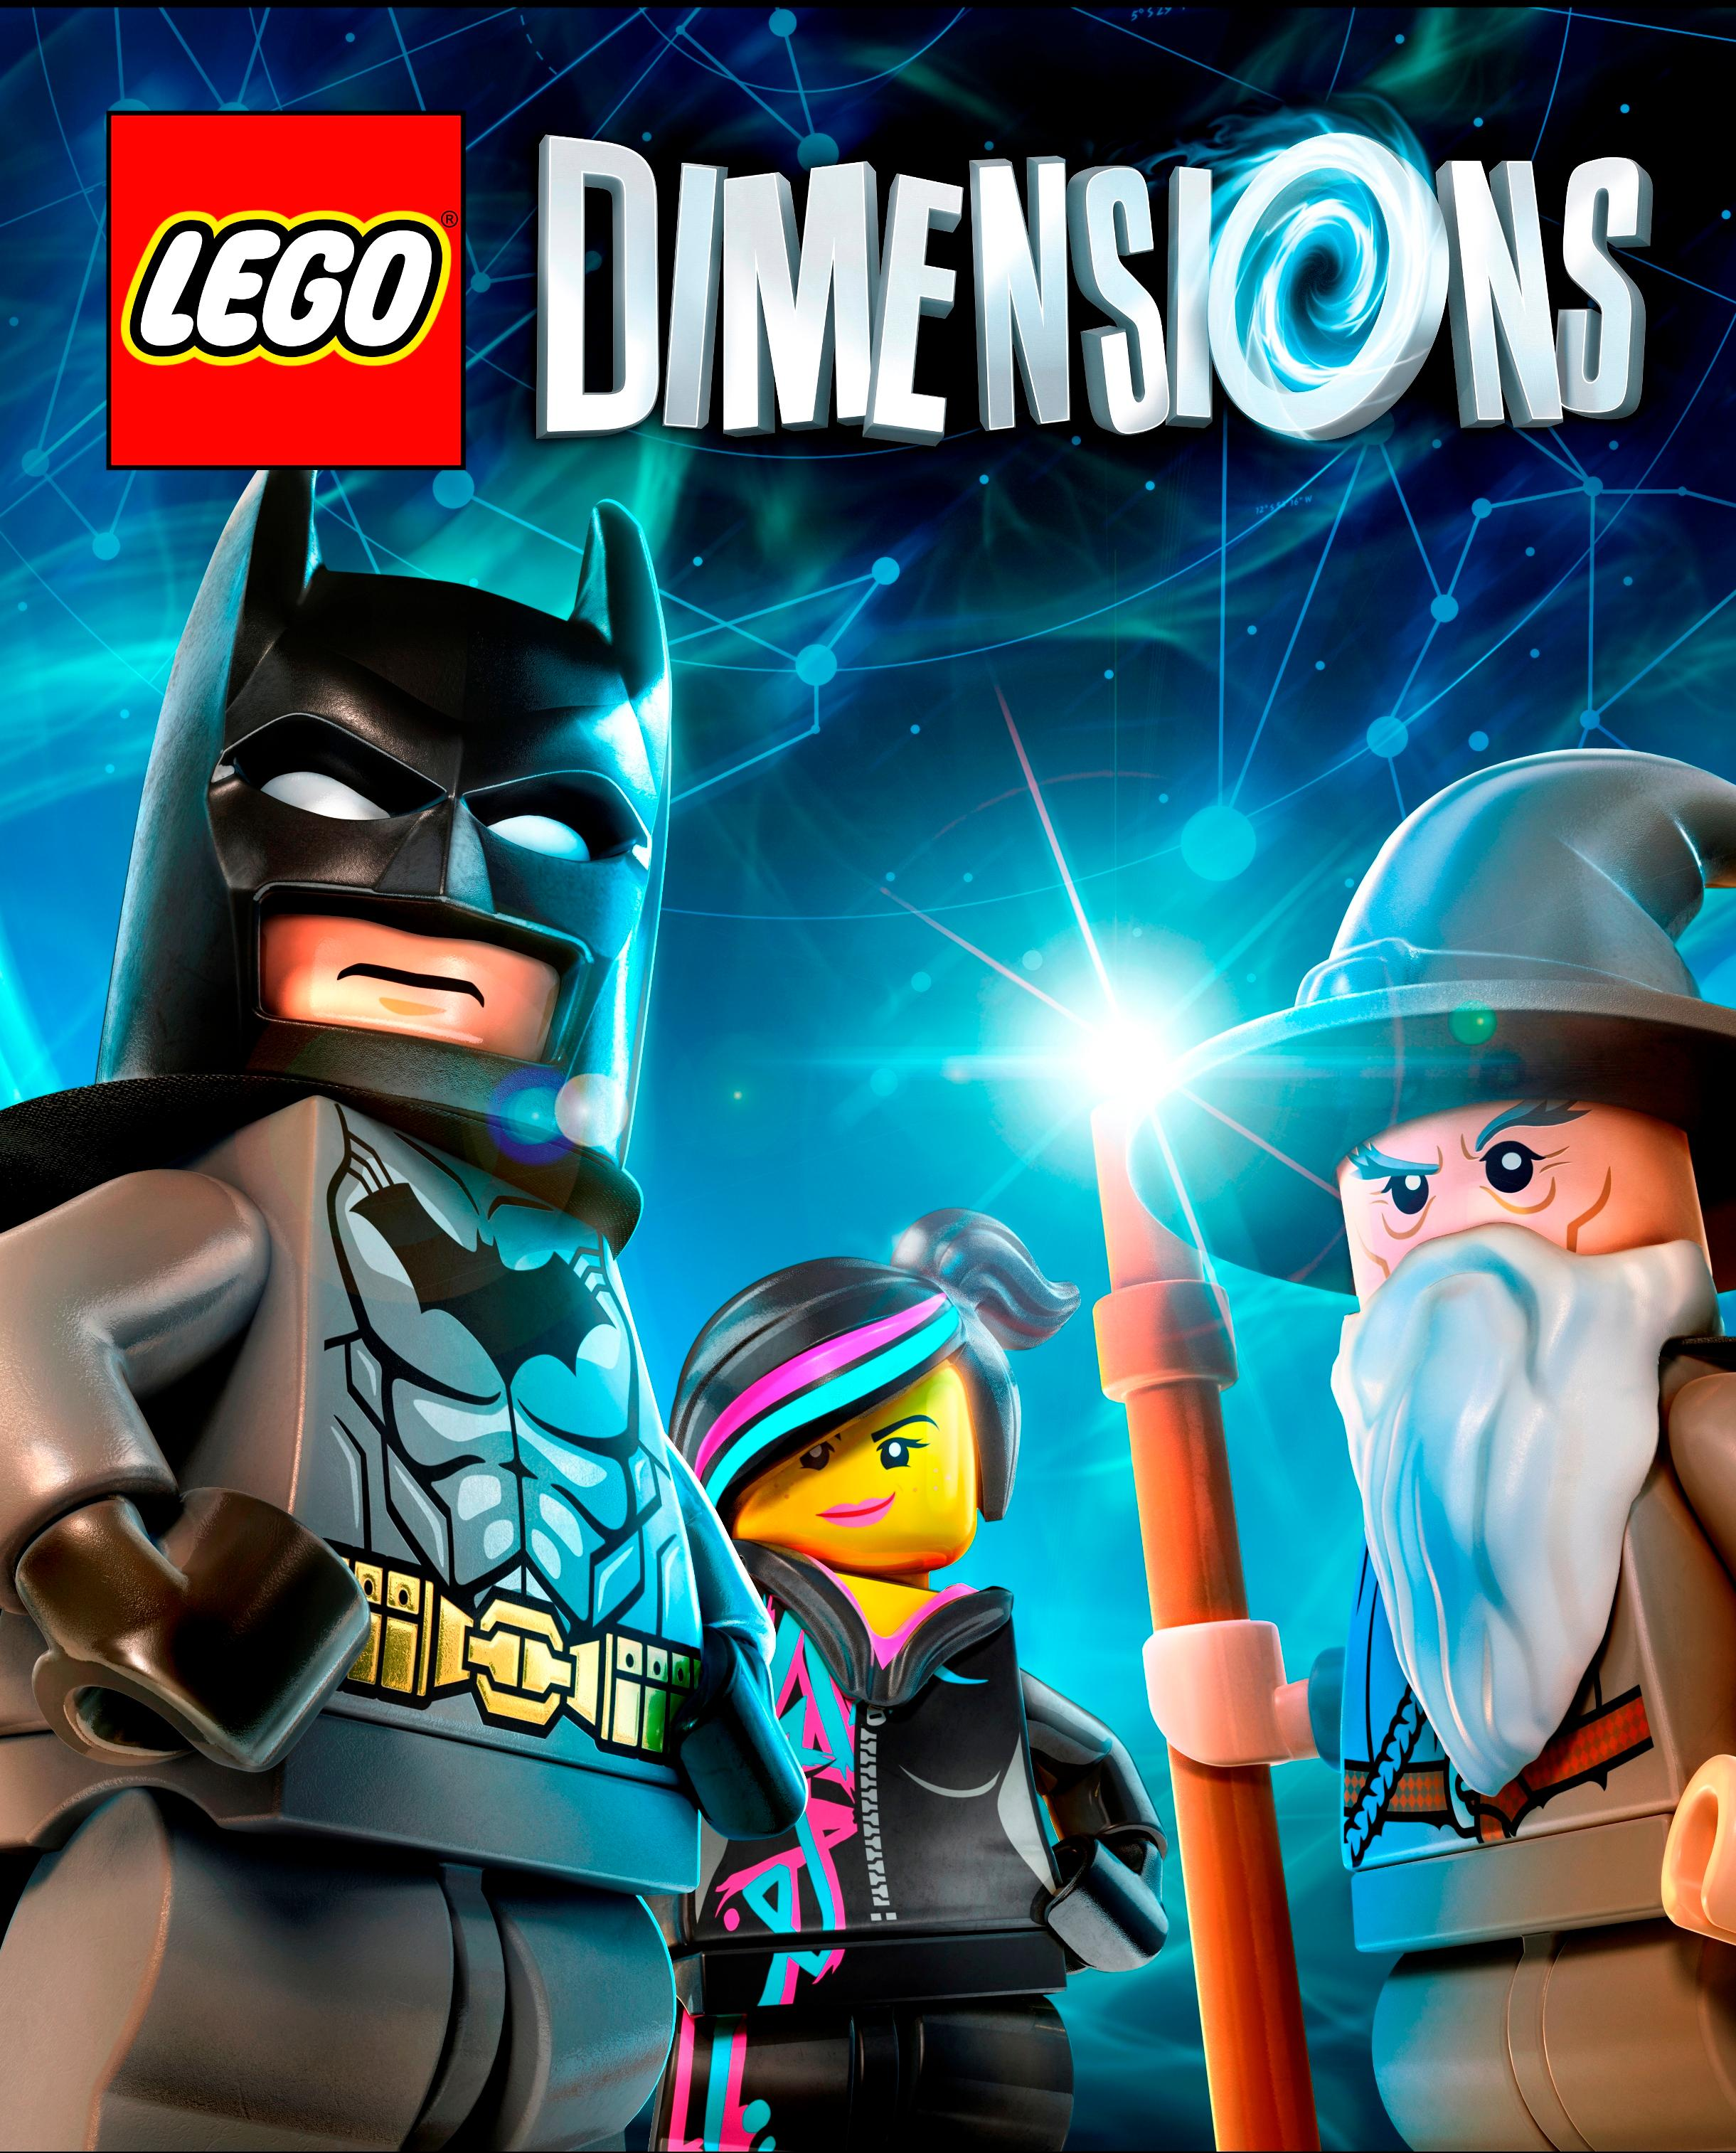 2441x3027 > LEGO Dimensions Wallpapers